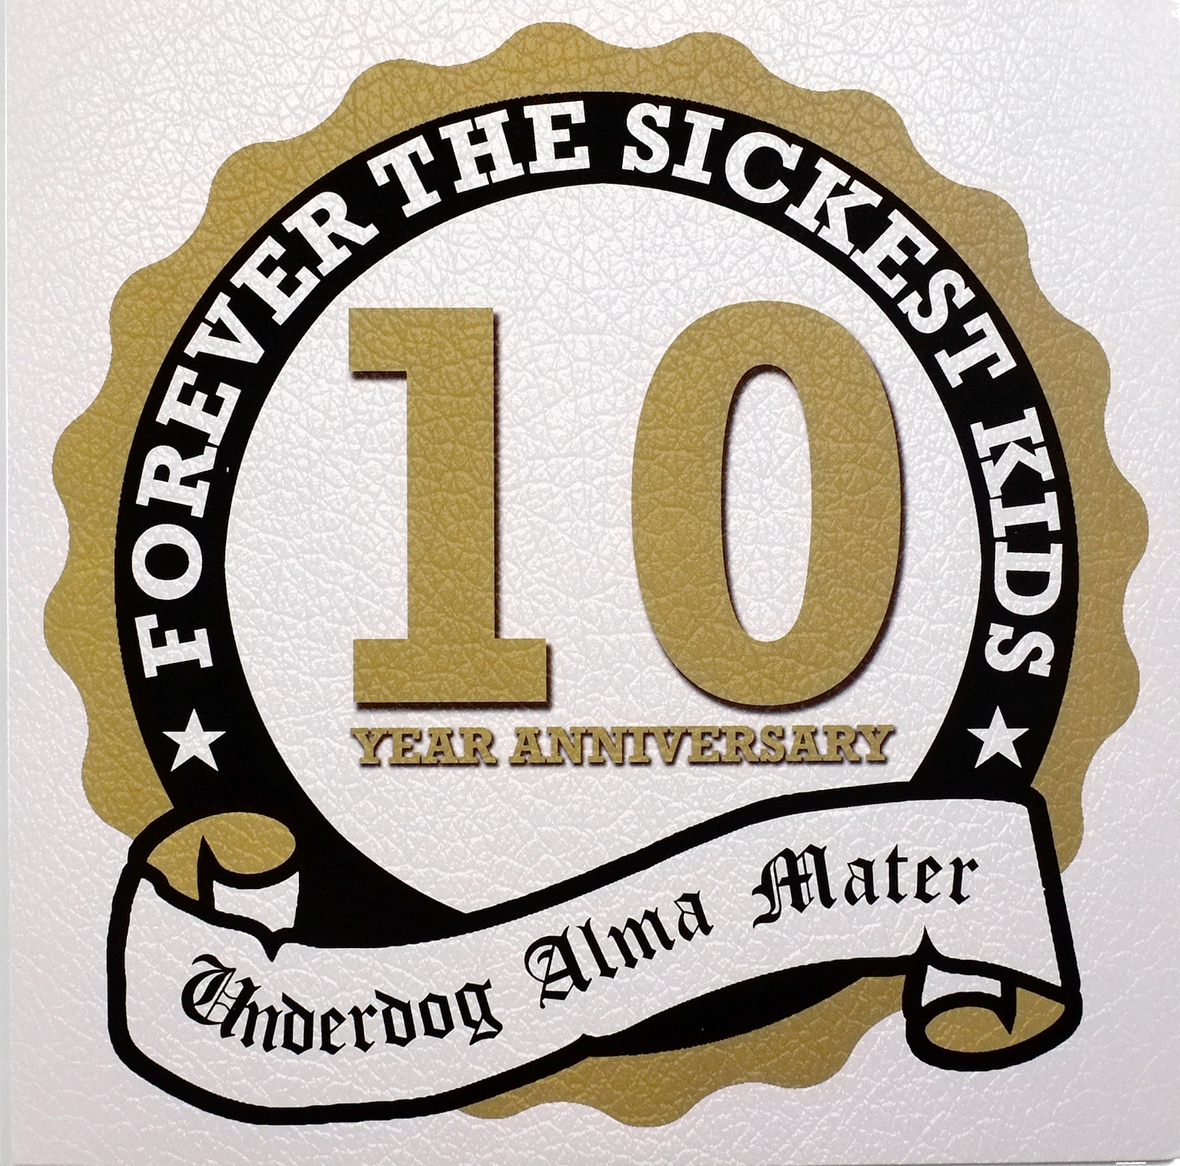 Forever The Sickest Kids Underdog Alma Mater 10 Year